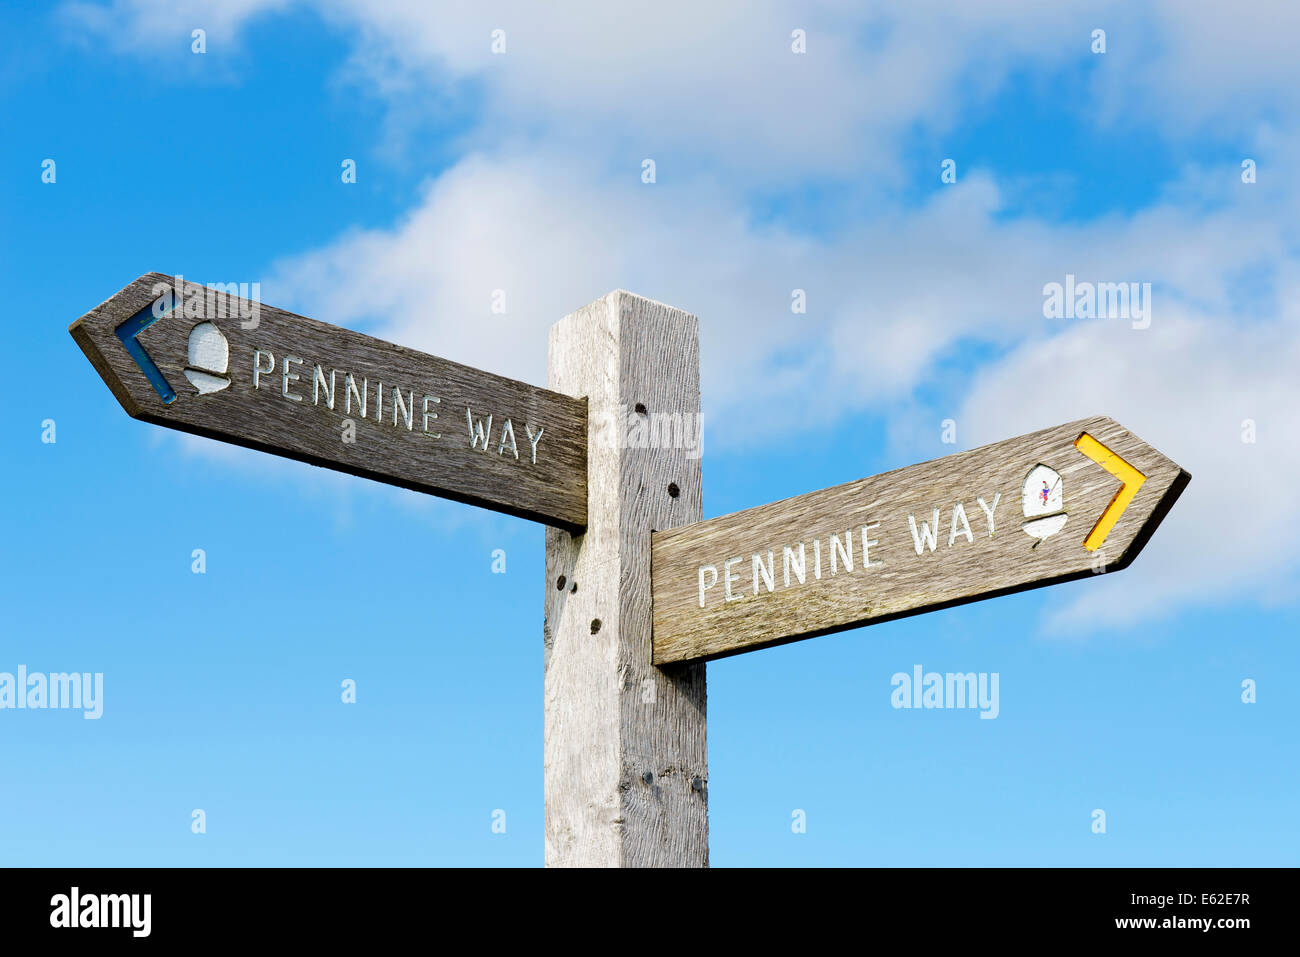 Pennine Way sign - Stock Image